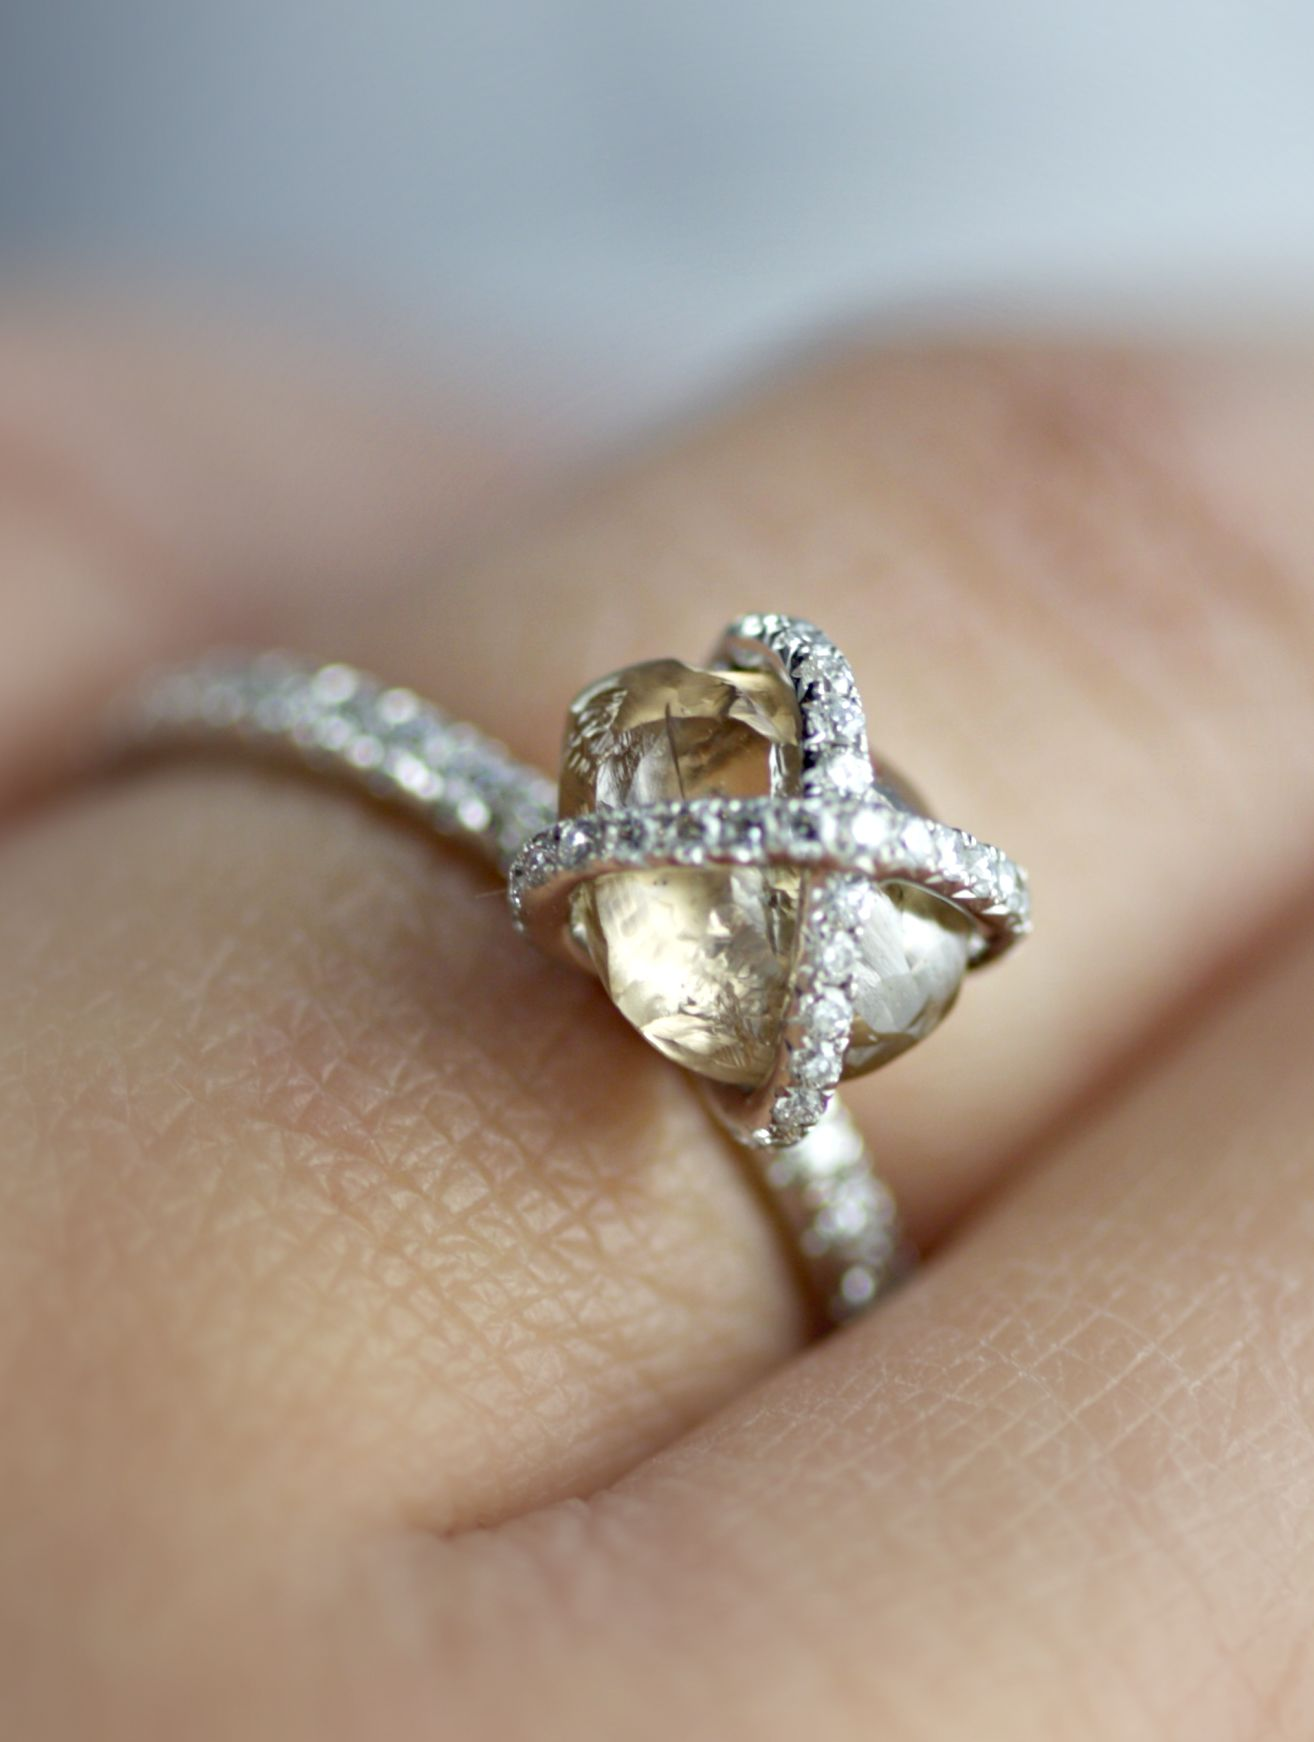 228ct embrace natural rough diamond engagement ring with